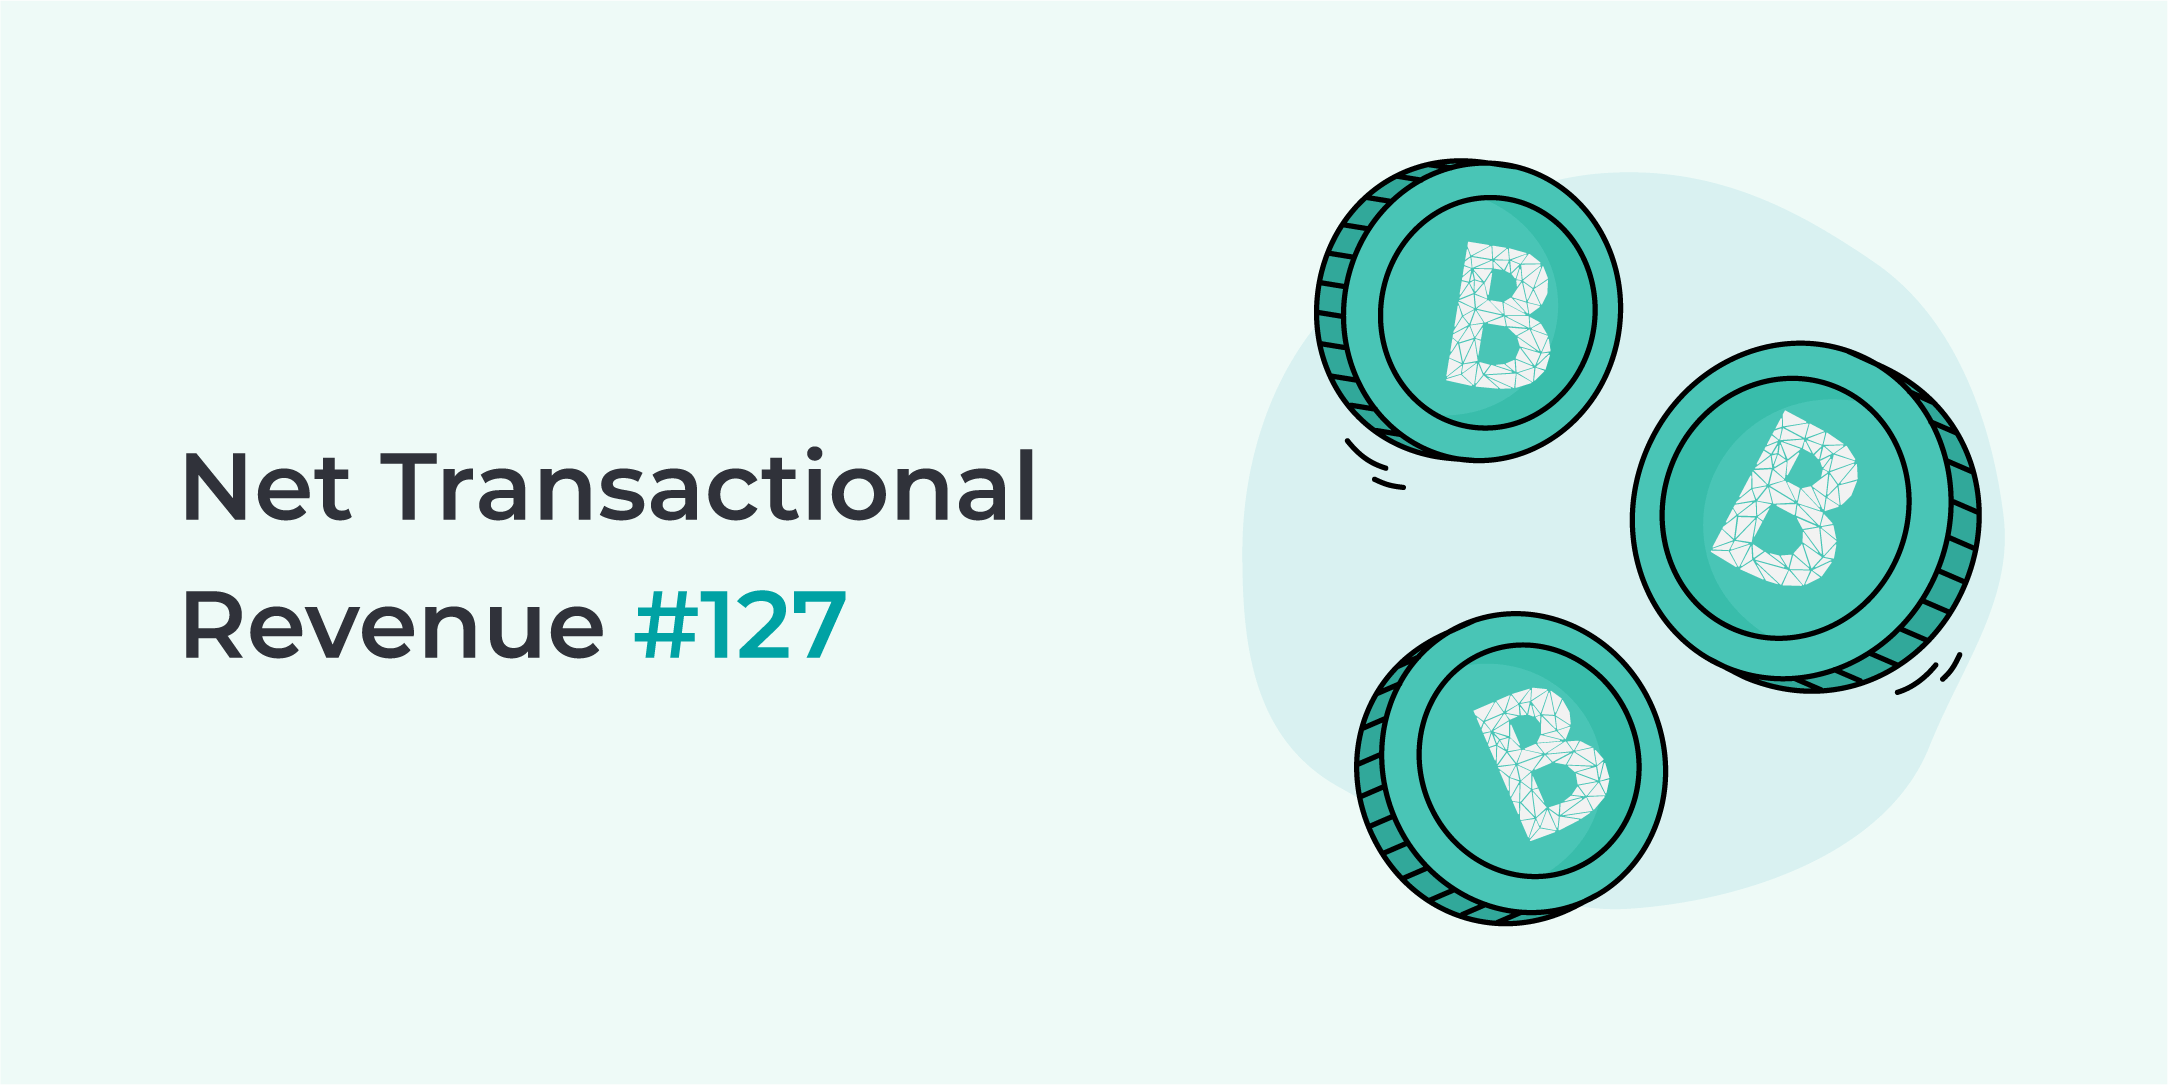 Bankera paid the 127th net transactional revenue